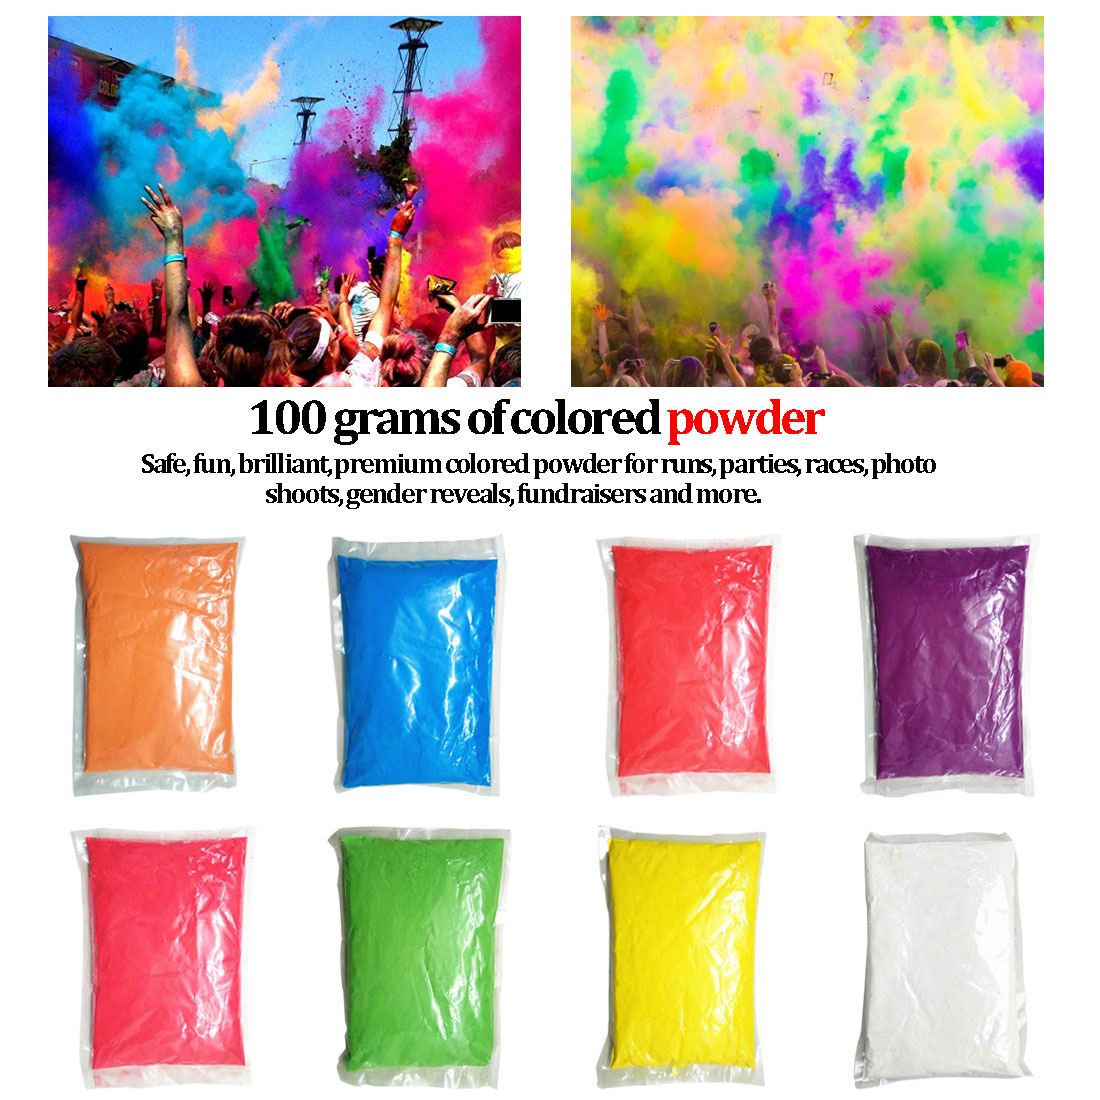 Novelty Festival Rainbow Corn Flour Funny Gadgets Colorful Powder Gags Practical Jokes 100g/bag Colored Powder For Holi Party